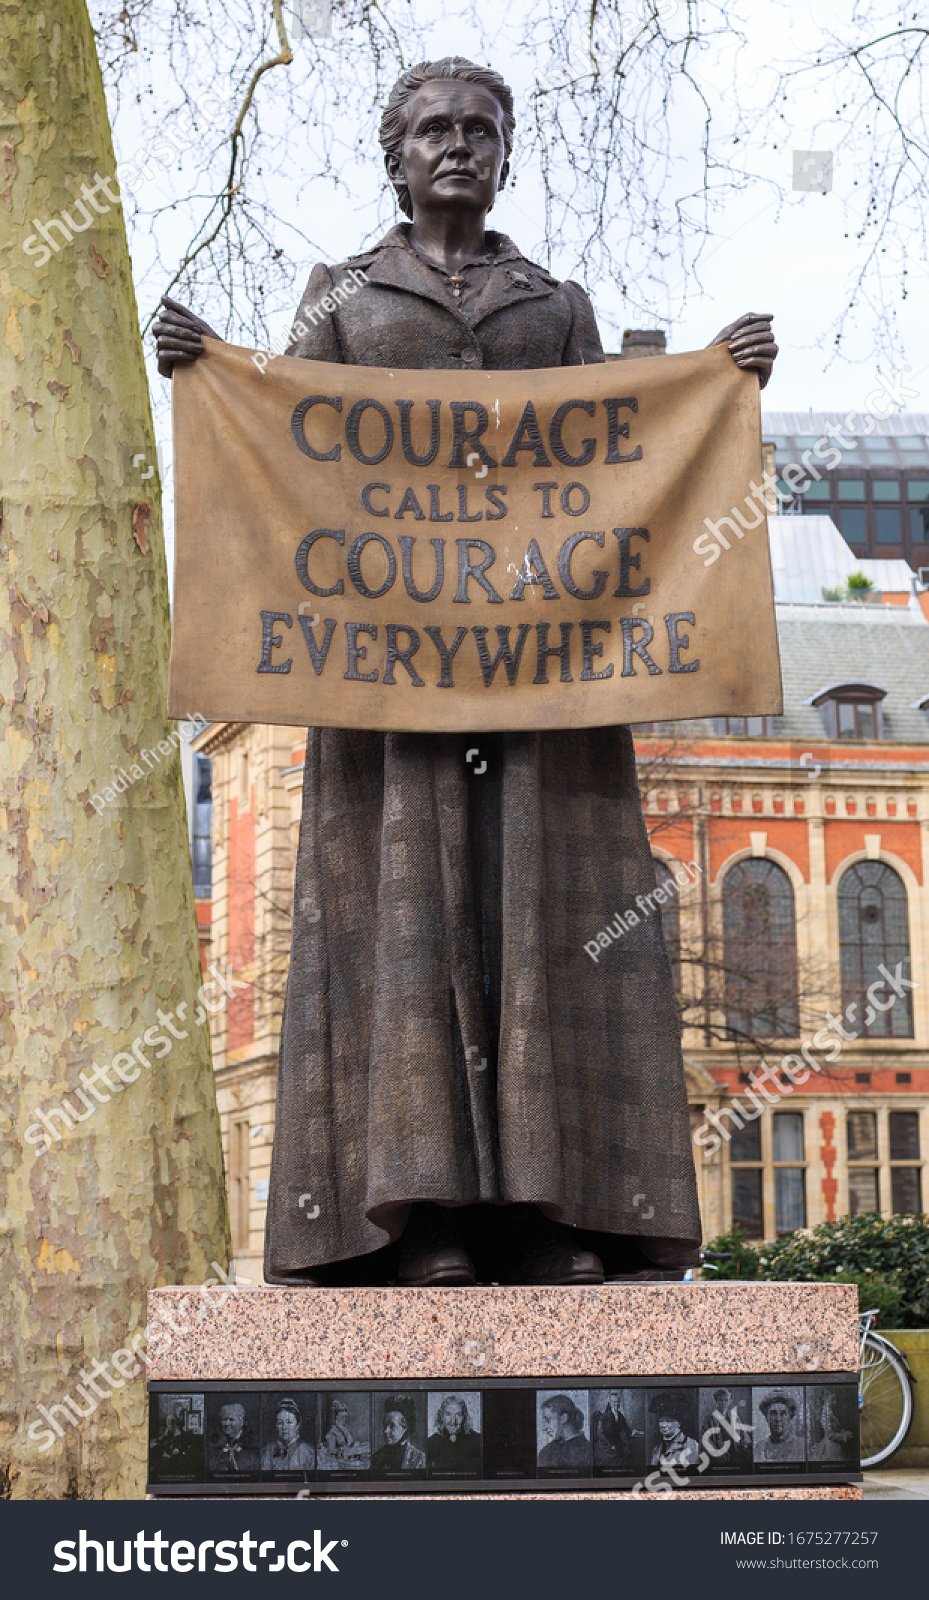 Suffragist Millicent Fawcett in Parliament Square, London, 2020. It is the only statue in the Square of a woman, and is also the only one which was designed by a woman - Gillian Wearing.